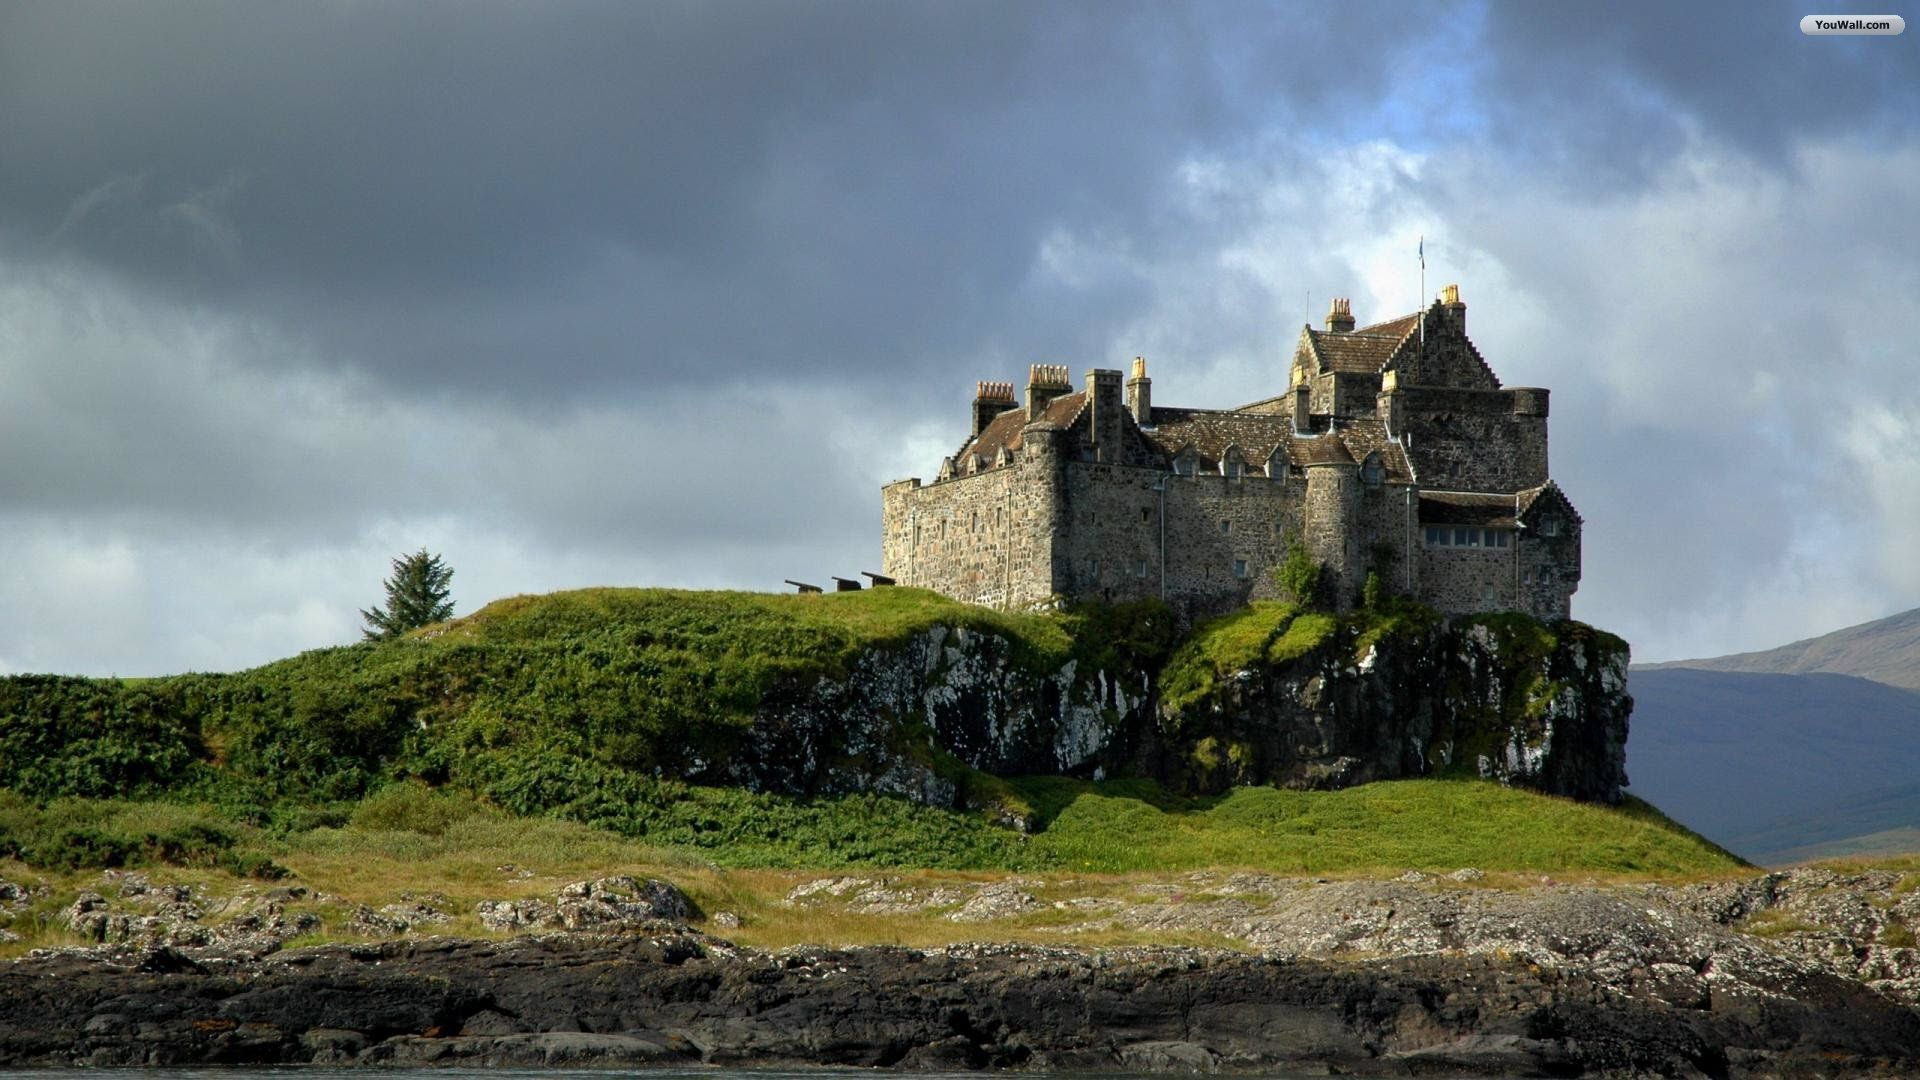 Scottish Castle Wallpapers   Top Scottish Castle Backgrounds 1920x1080